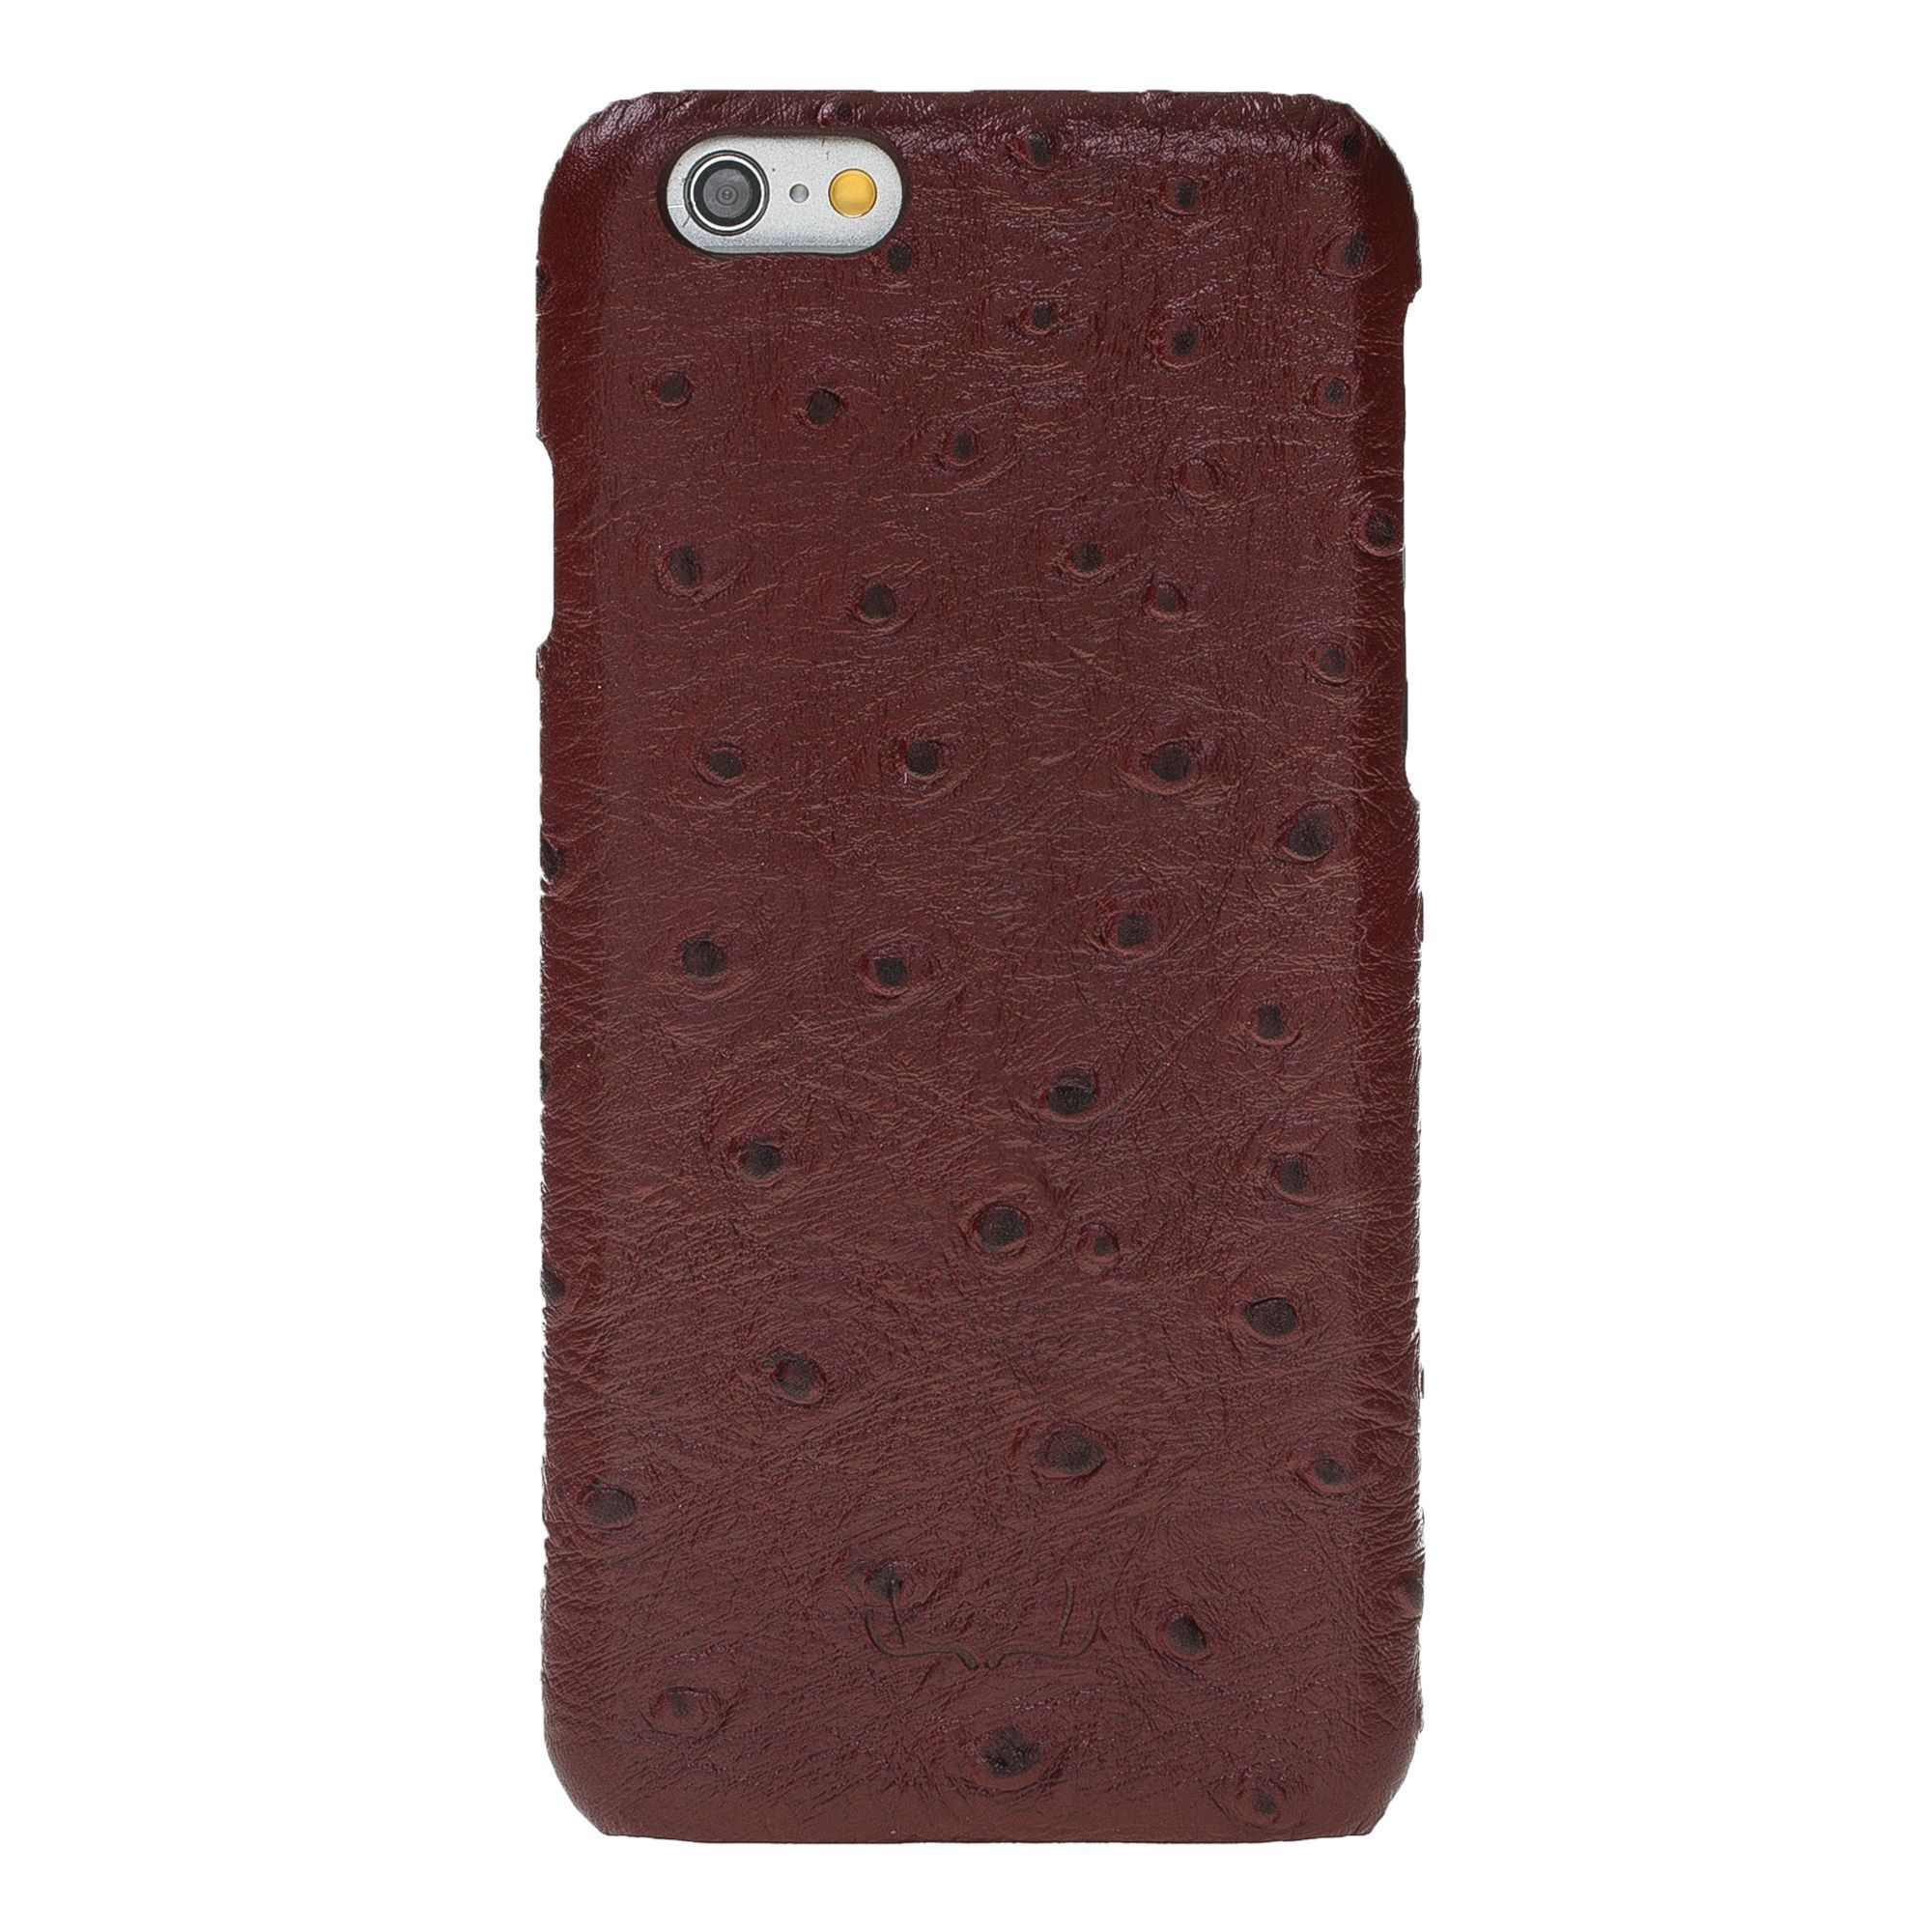 BNT Ultimate Jacket Leather Cases - Ostrich - iPhone 6/6S - Red